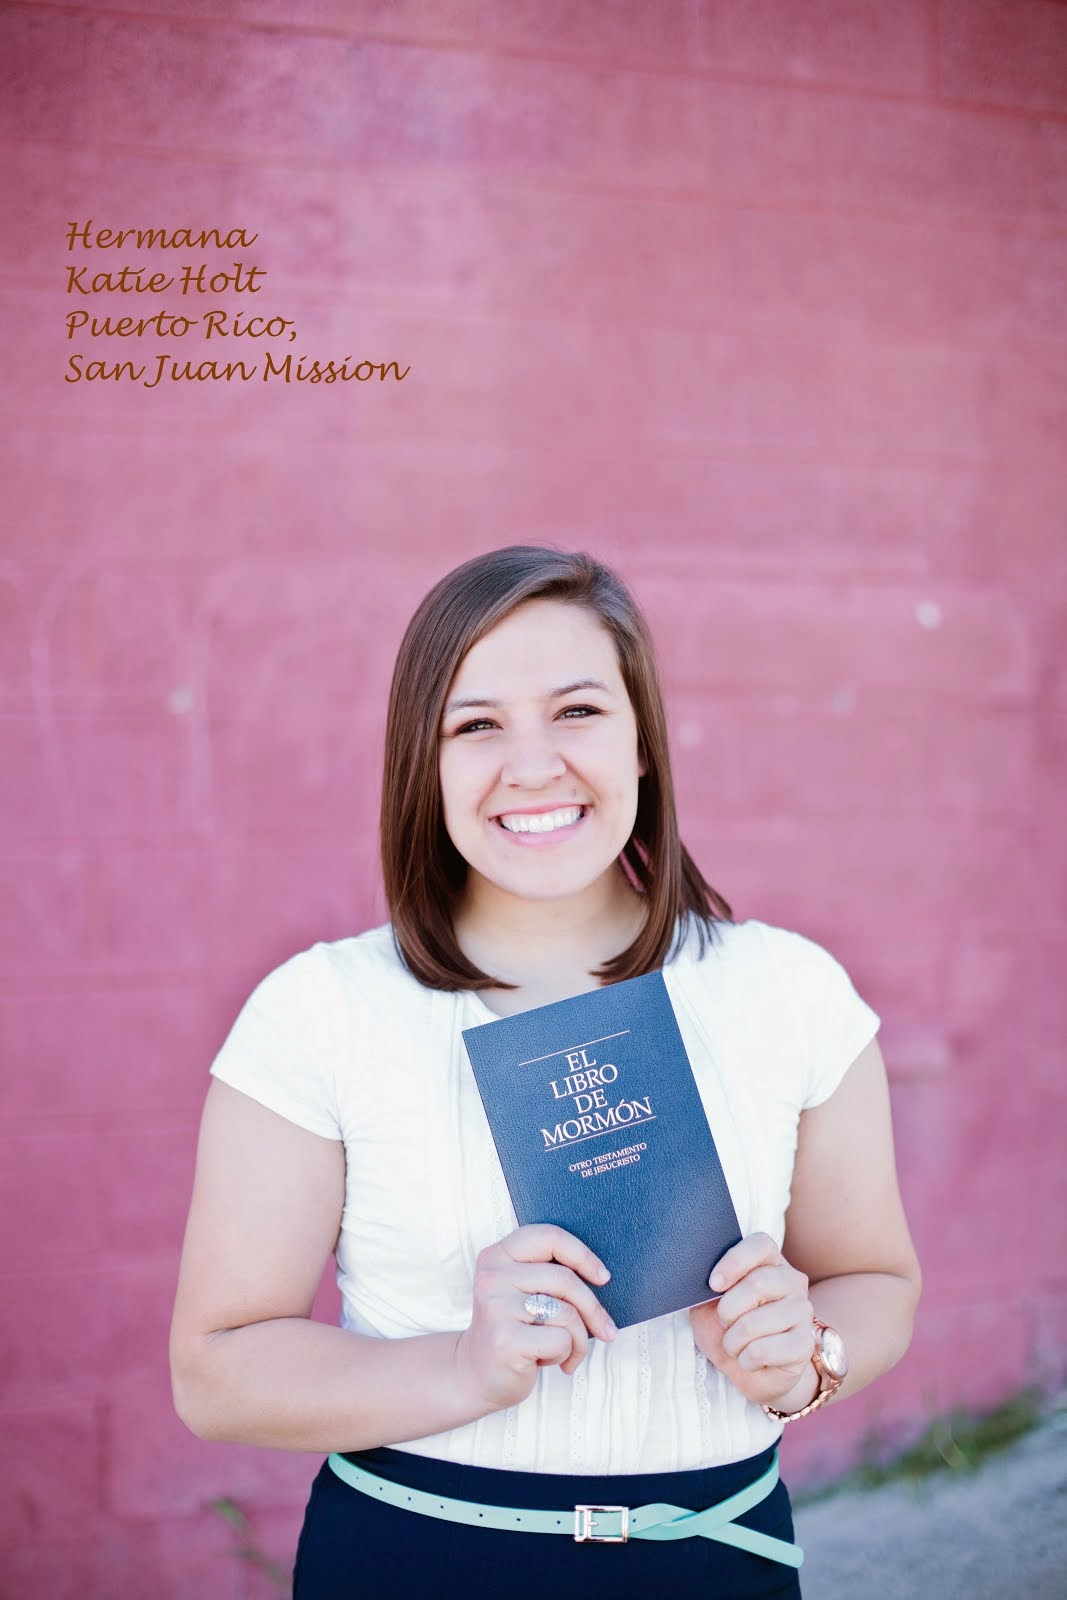 Hermana Katie Holt